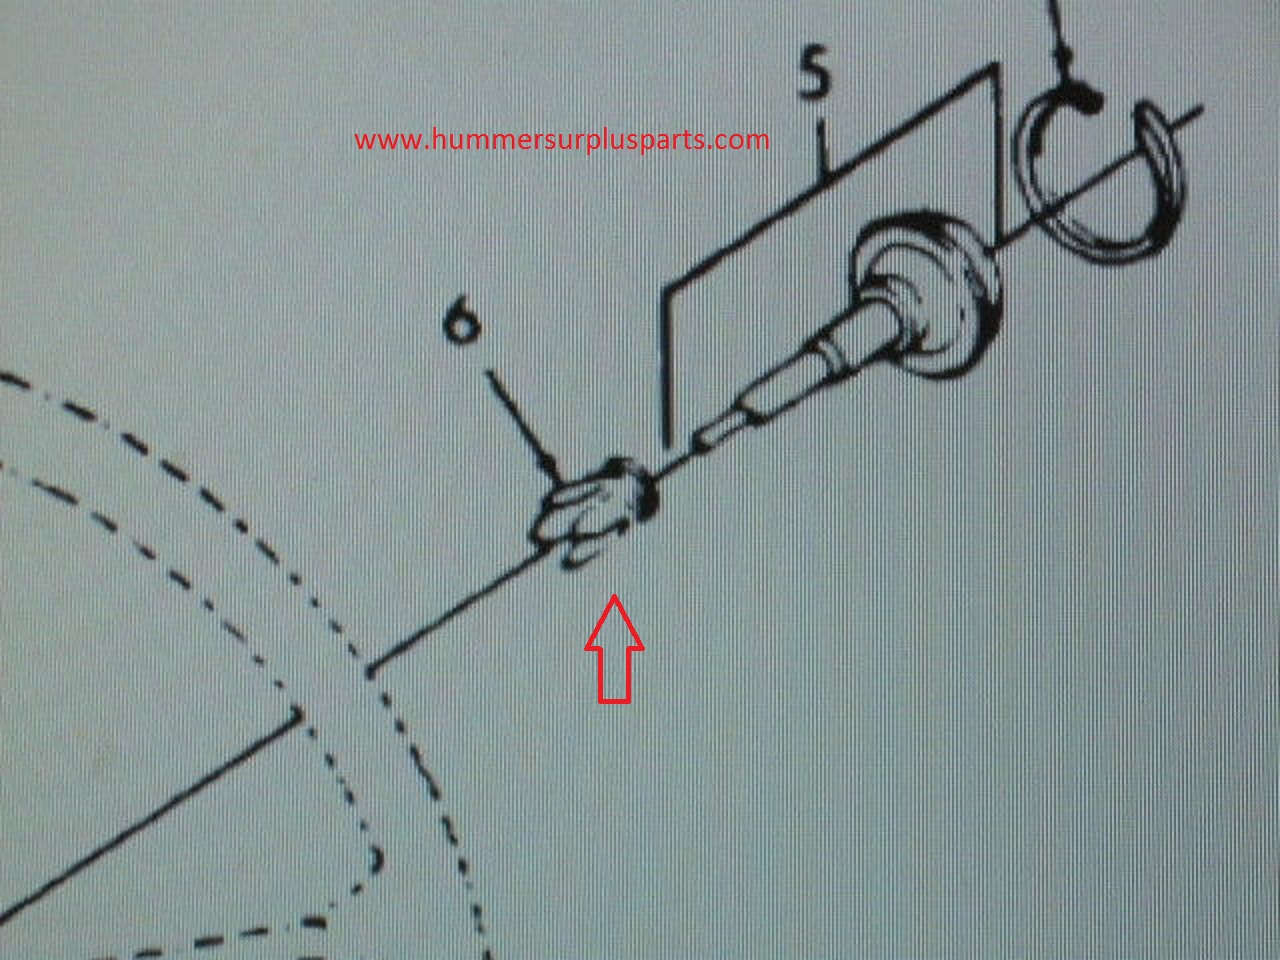 3700 Arco Rod Wiring Diagram - Wiring Diagram For Light Switch •